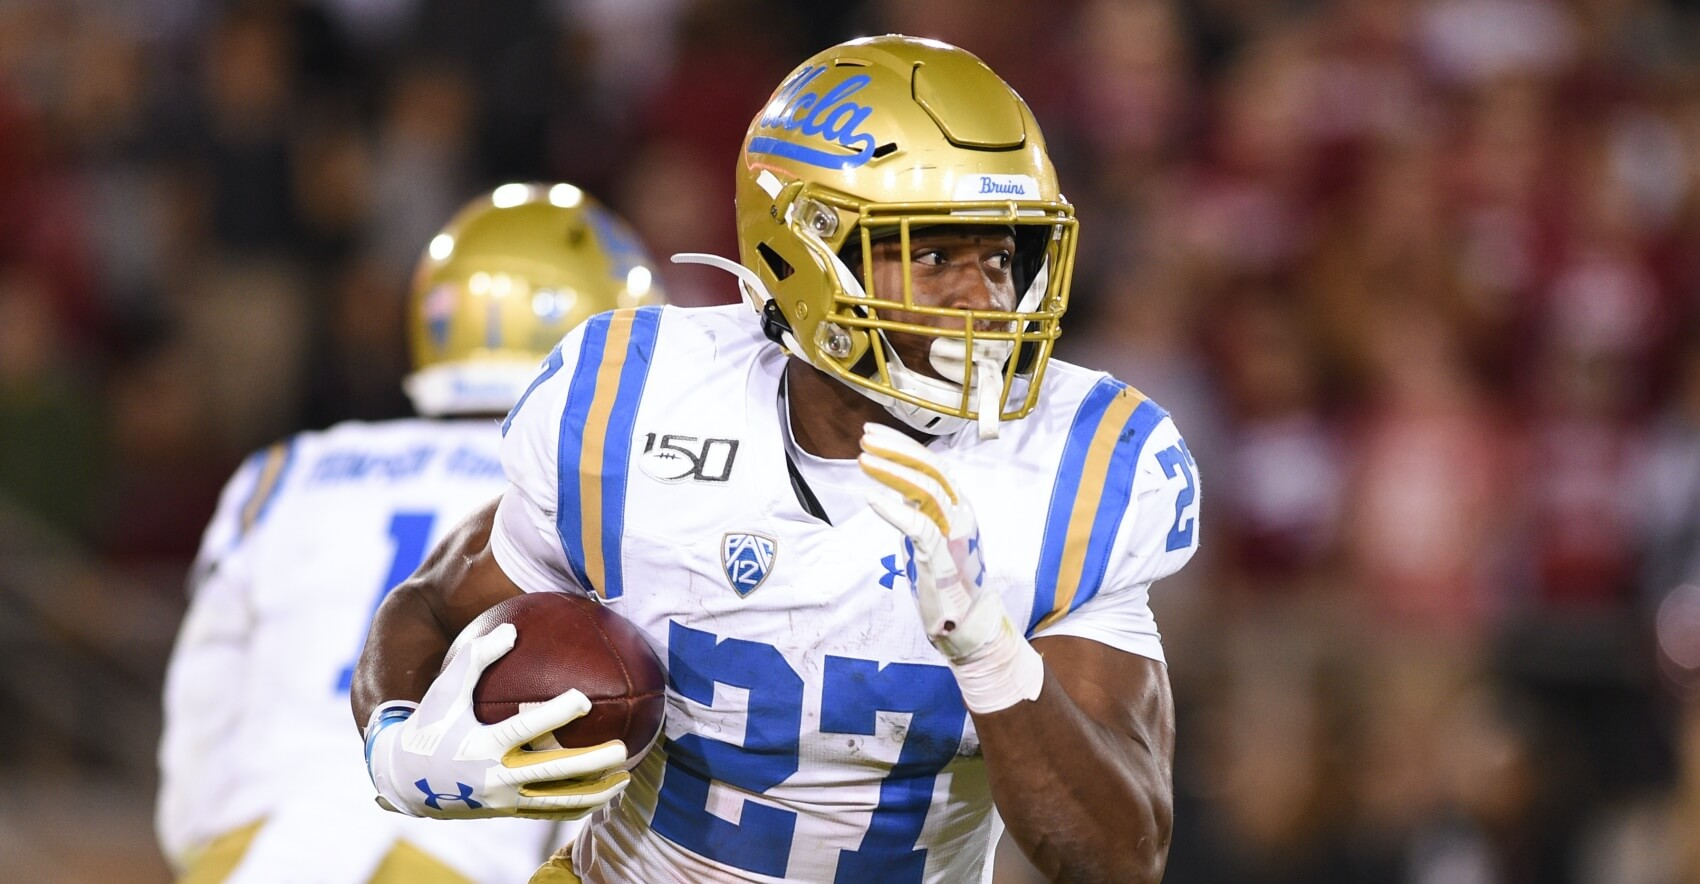 2020 NFL Draft Rookie RB Landing Spots: Rounds 4-7 (Fantasy Football)